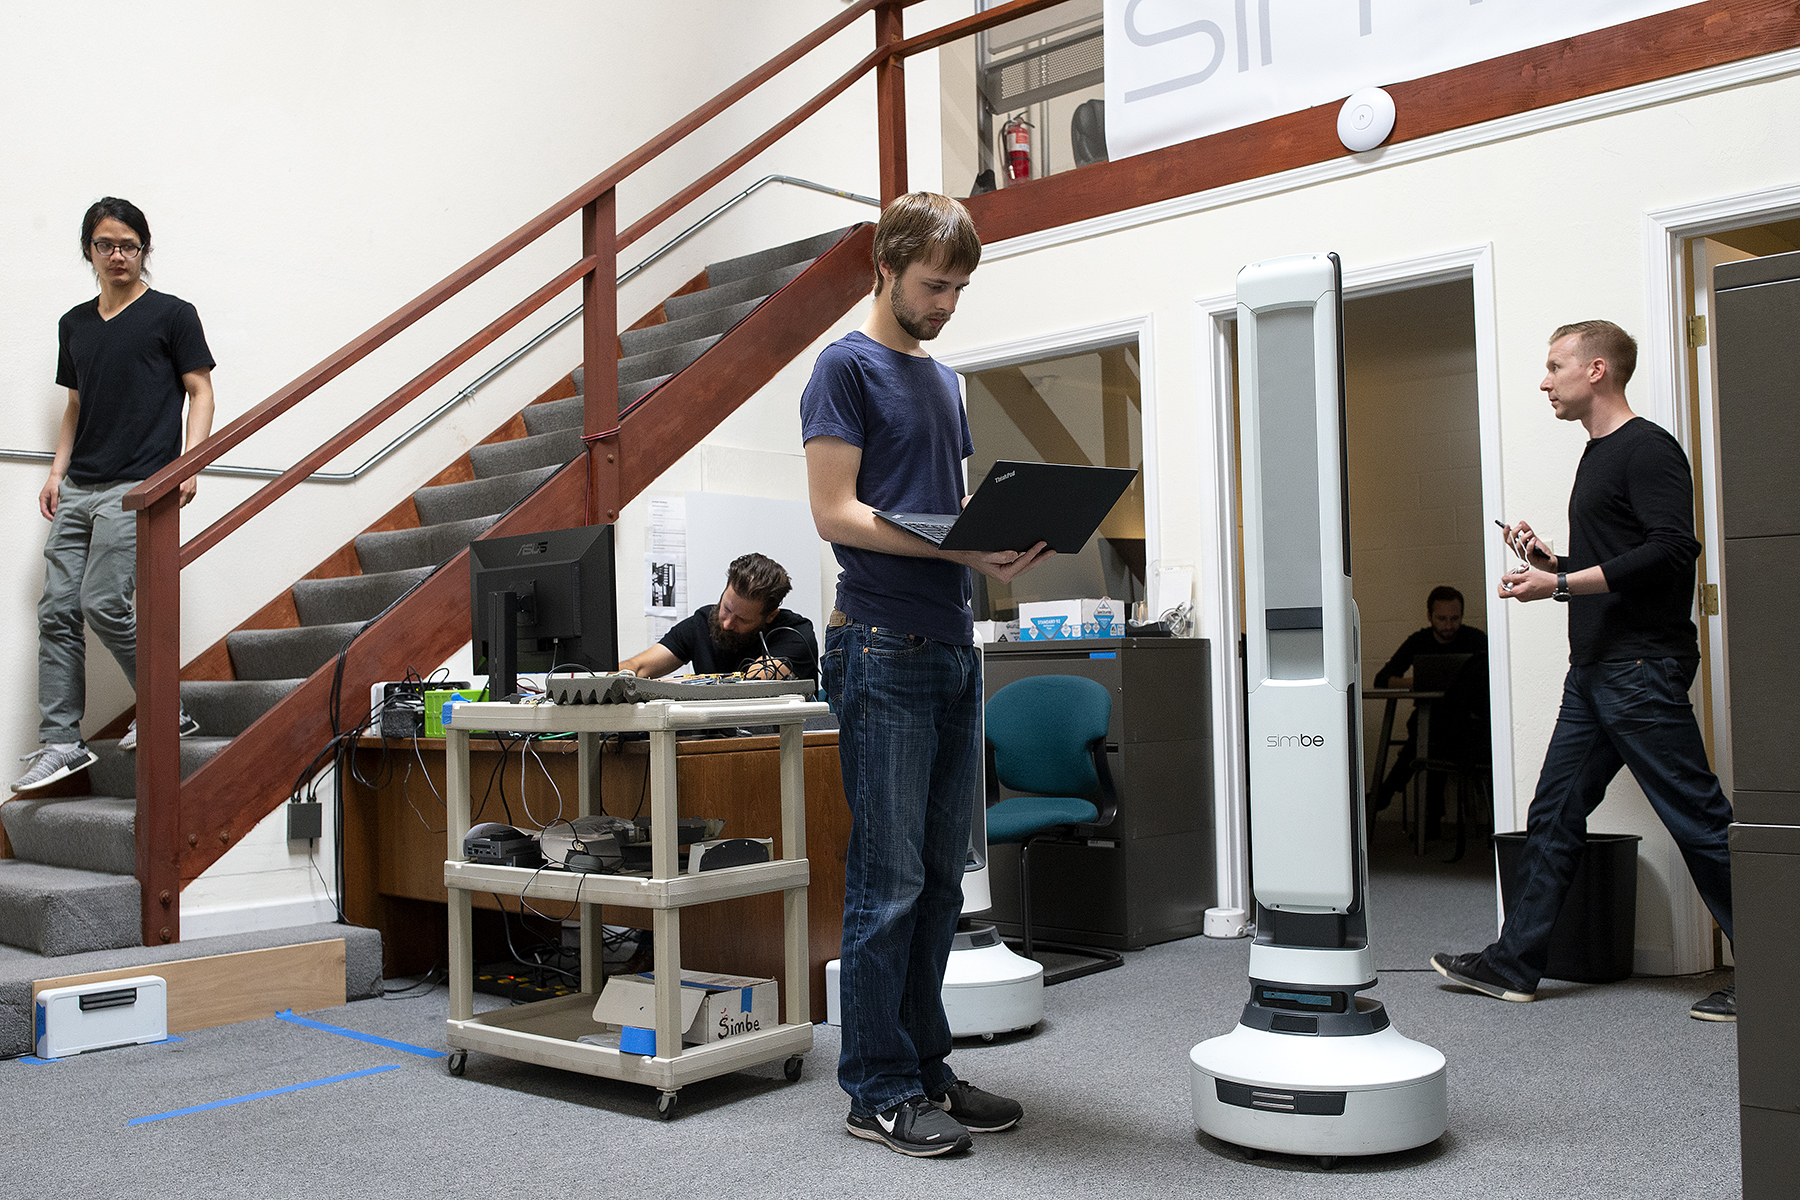 Senior robotics engineer Steven Macenski works on robot perception with the Tally robot at the headquarters of Simbe Robotics in San Francisco, Calif., on Thursday, June 28, 2018. The company makes Tally, a fully autonomous shelf-auditing and analytics robot for retail goods. Tally uses computer vision capabilities to audit shelves for out-of-stock items, low stock items, misplaced items and pricing errors and is designed to due so while operating alongside shoppers and employees. CONTACTS:Steven Macenski – senior robotics engineer – focused on robot behavior stevenmacenski@gmail.com224-343-3533